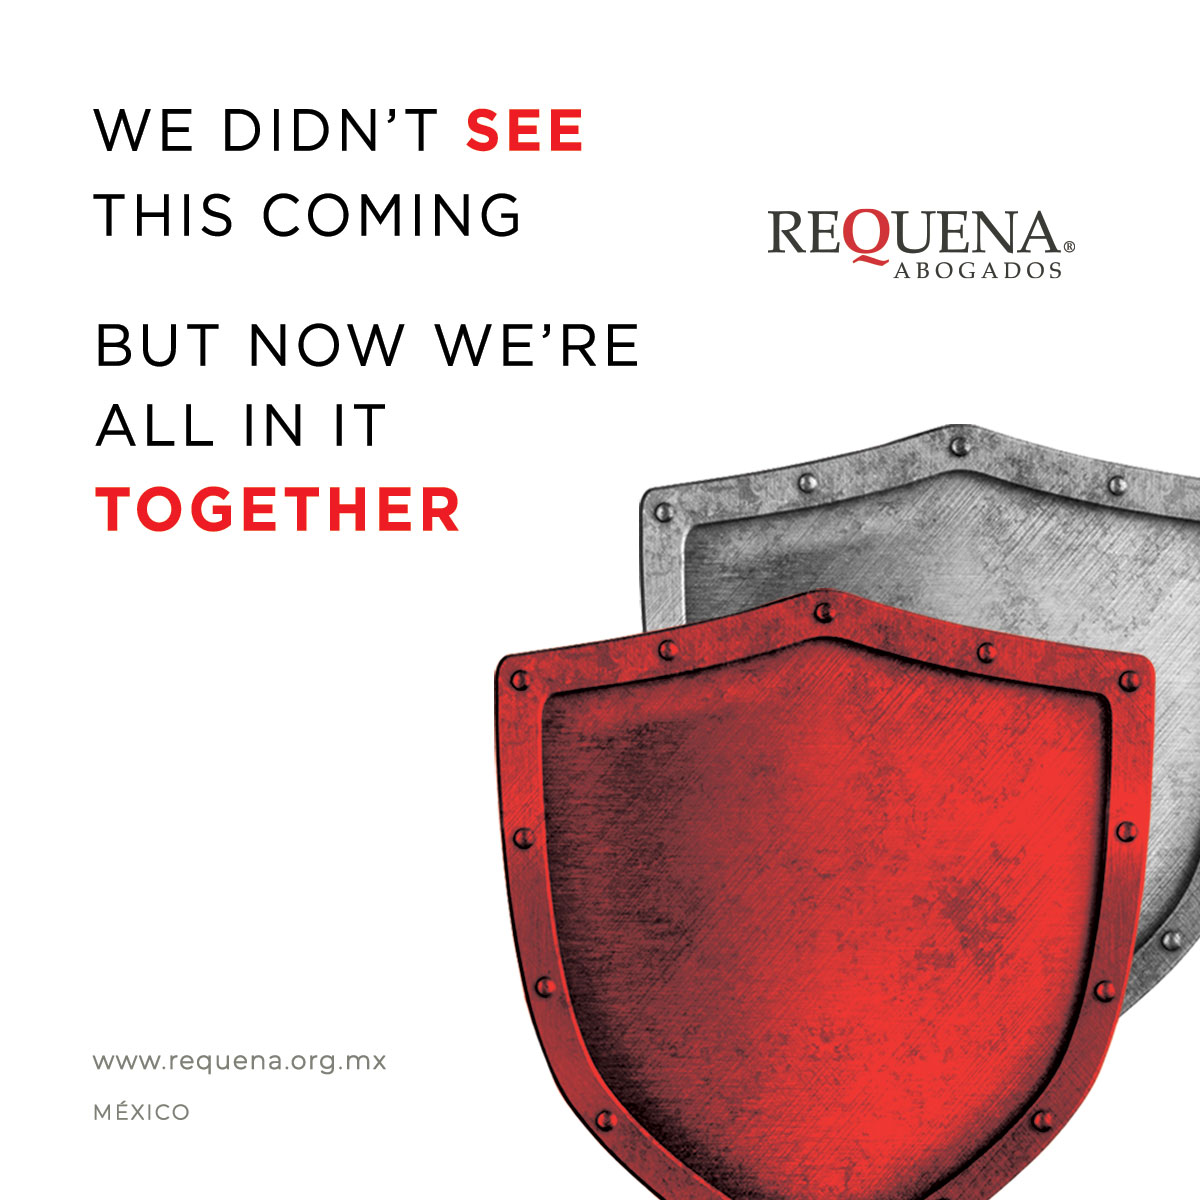 We didn't see this coming, but now we're all in it together | Covid-19 | Requena Abogados